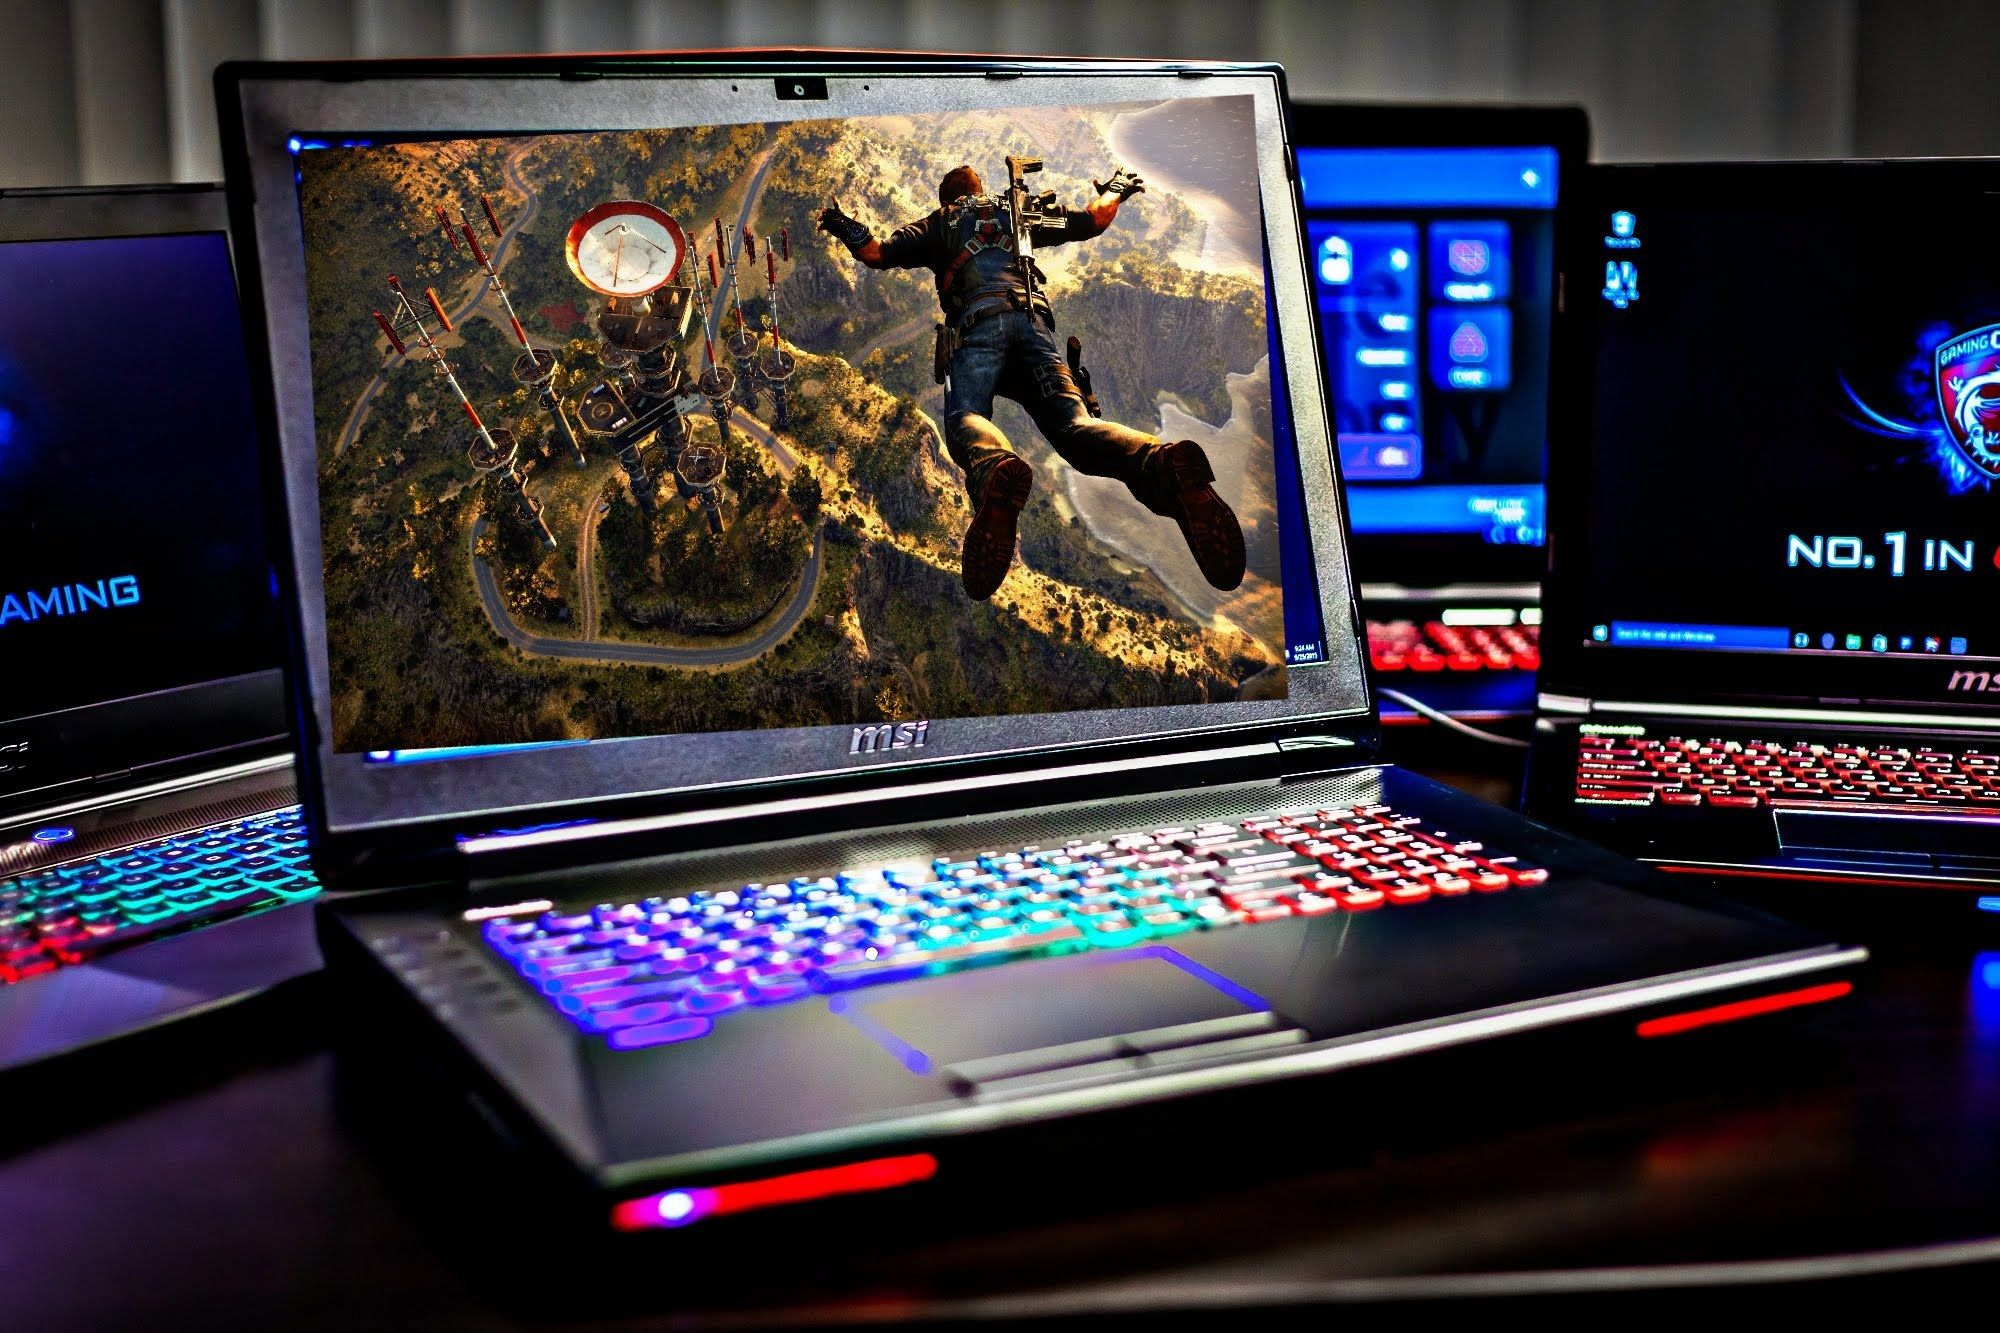 Here Are Some Amazing Hi Tech Gaminglaptops Of 2016 That Every Gamer Dreams To Possess Best Gaming Laptop Gaming Laptops Best Laptops